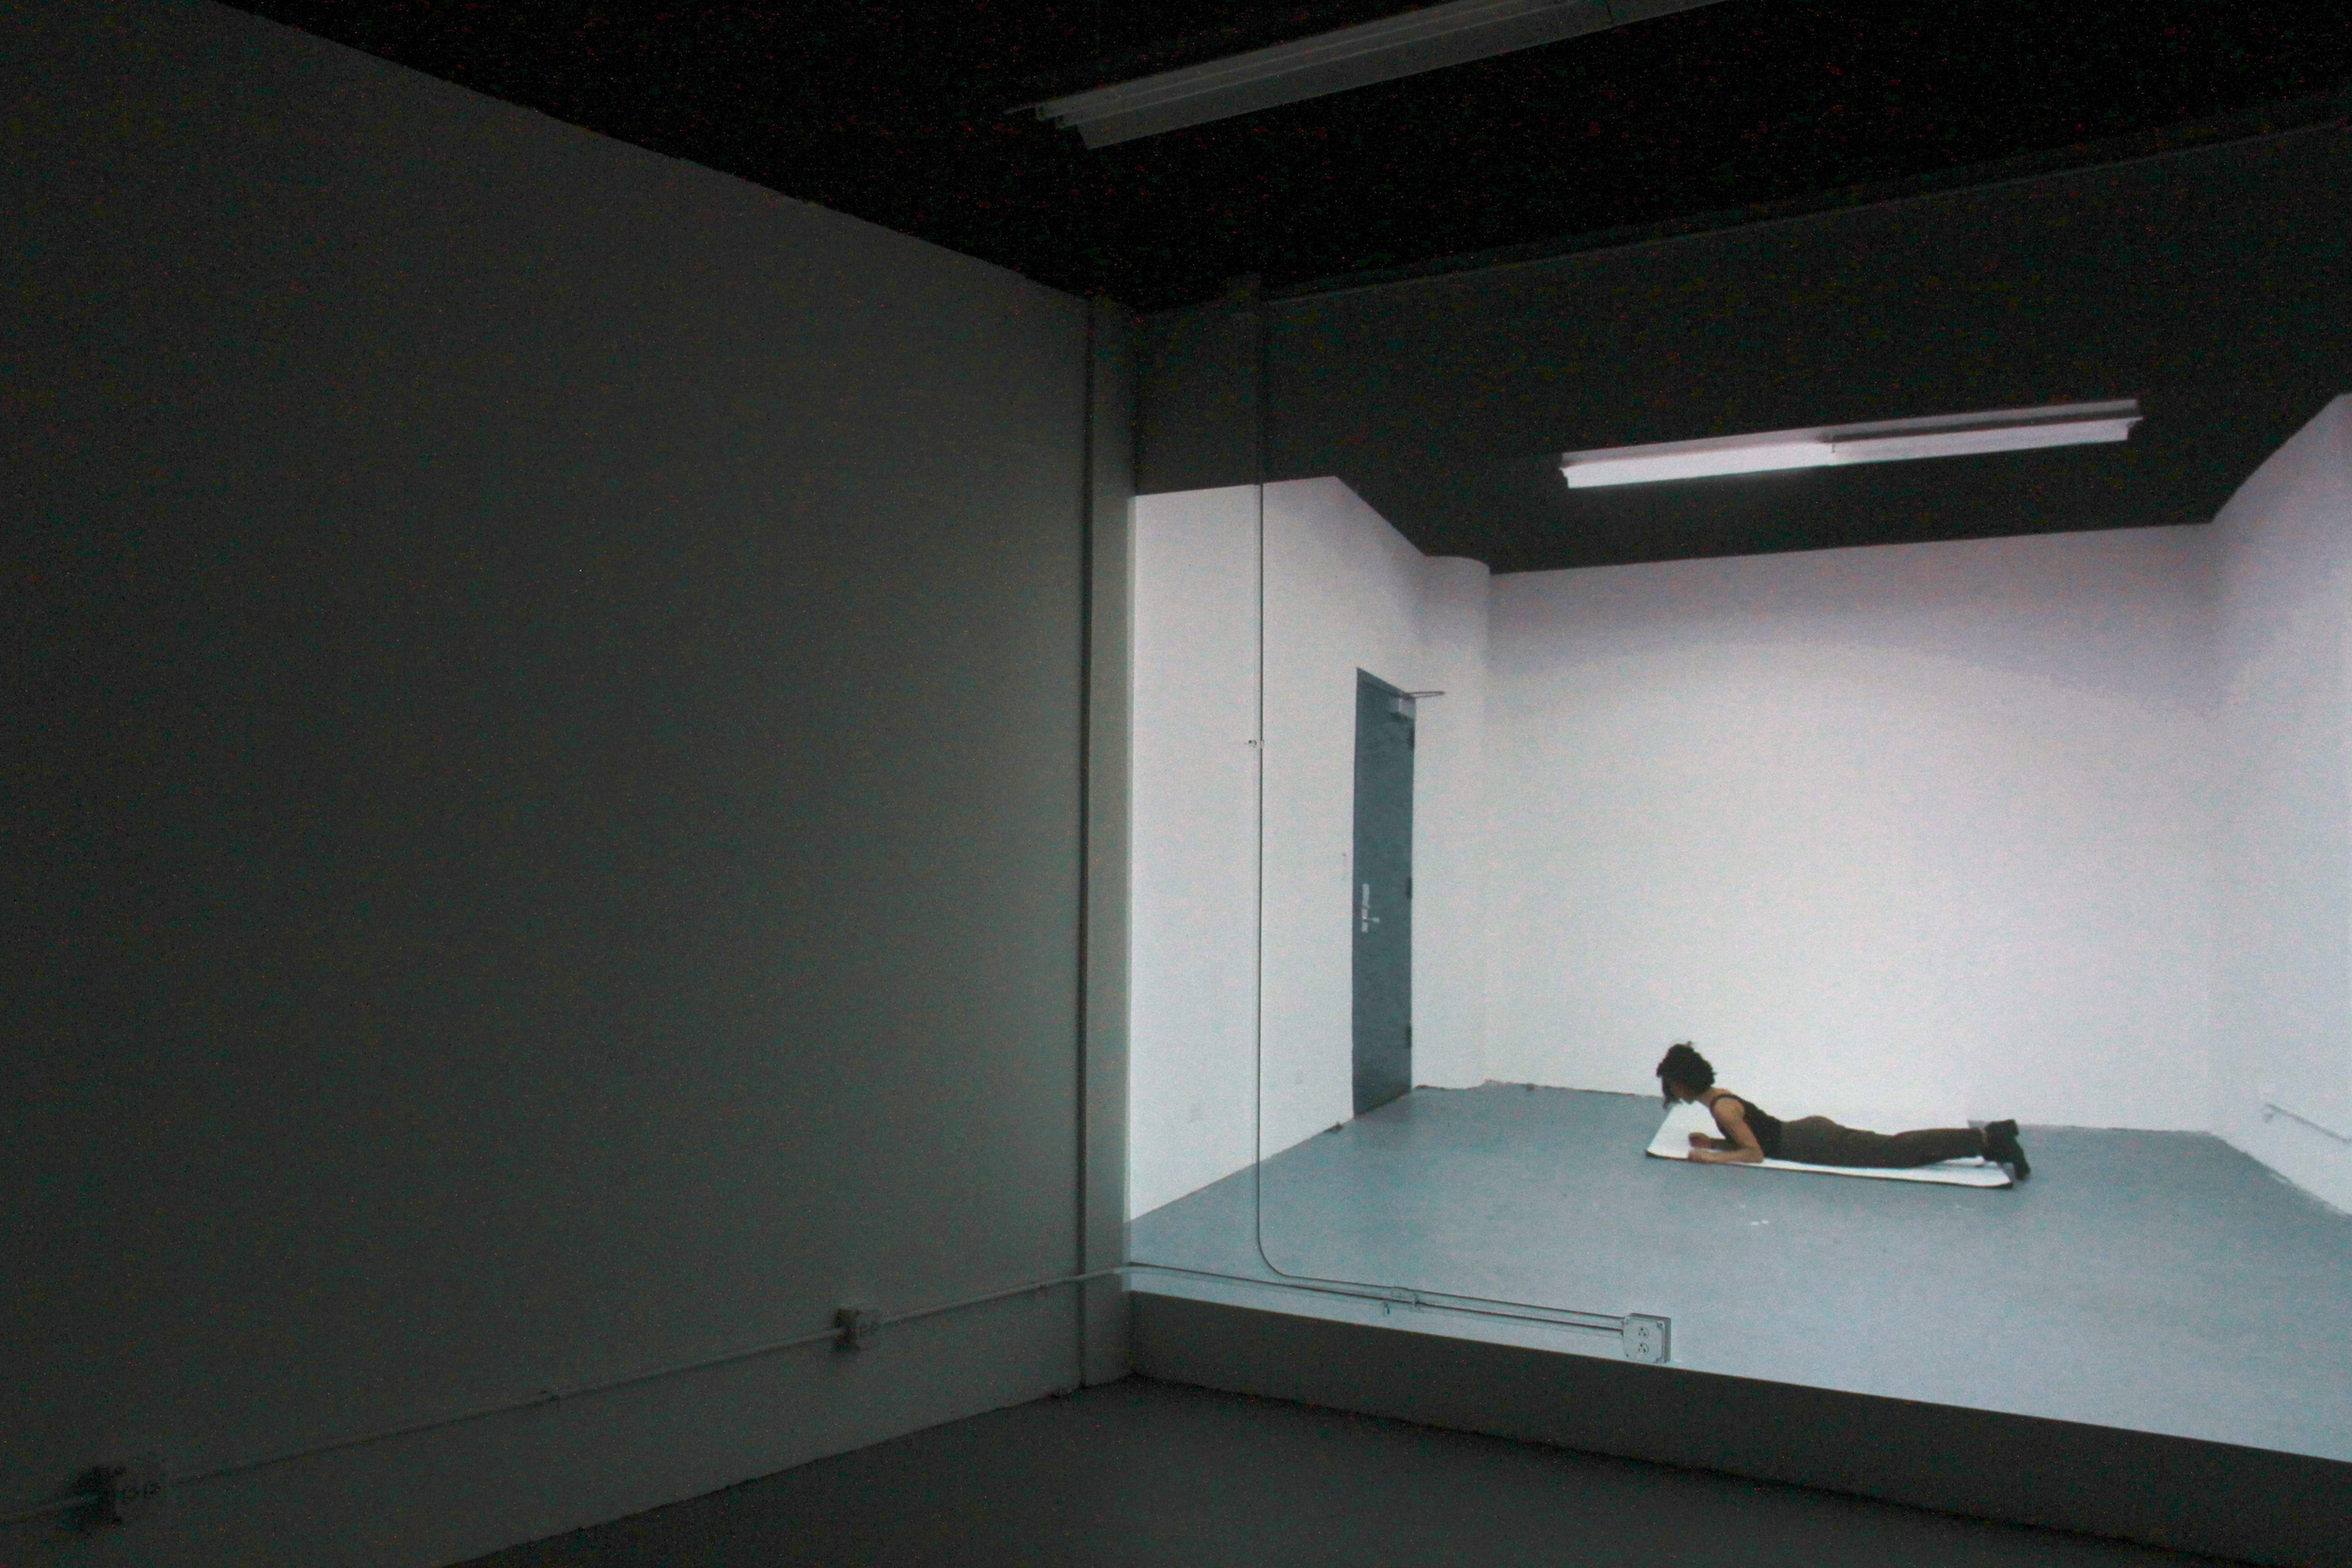 Room Performance, 2013